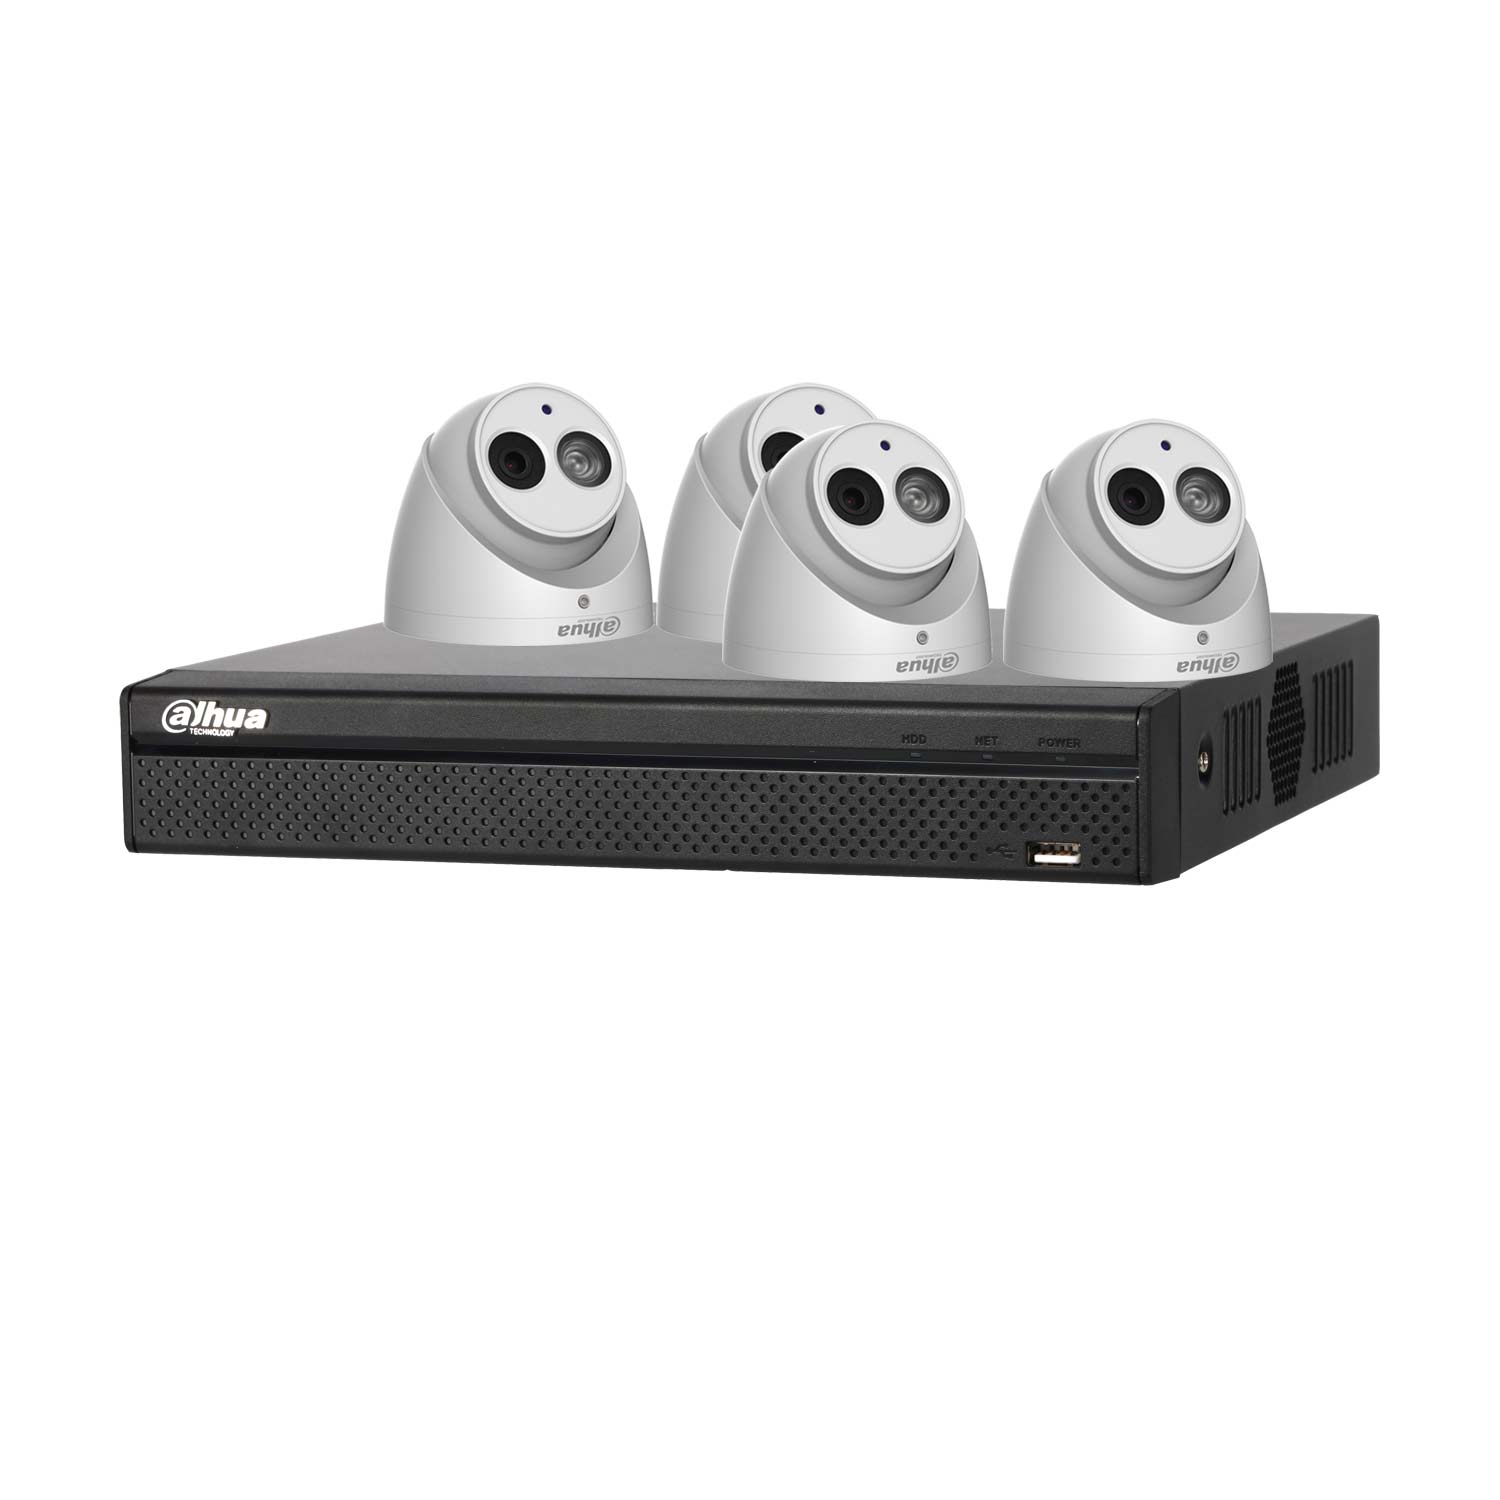 Dahua 6MP 120dB WDR 4Ch IP CCTV System with 4 Turret Cameras